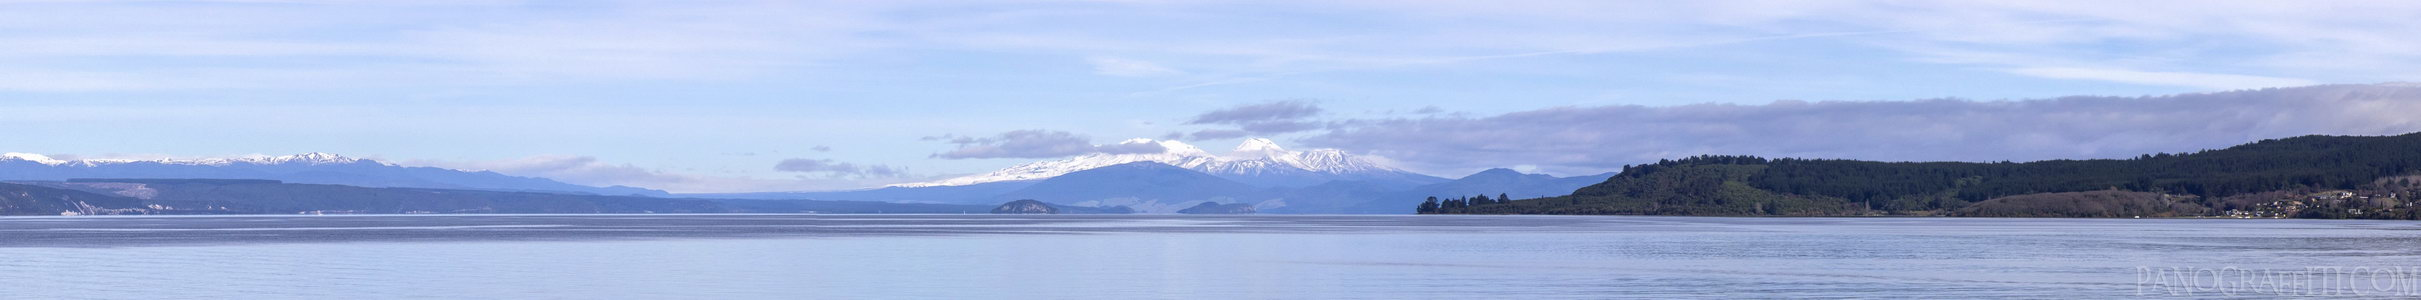 Mt Ruapehu and Ngauruhoe Across Lake Taupo - Lake Taupo, Taupo, Waikato, New Zealand